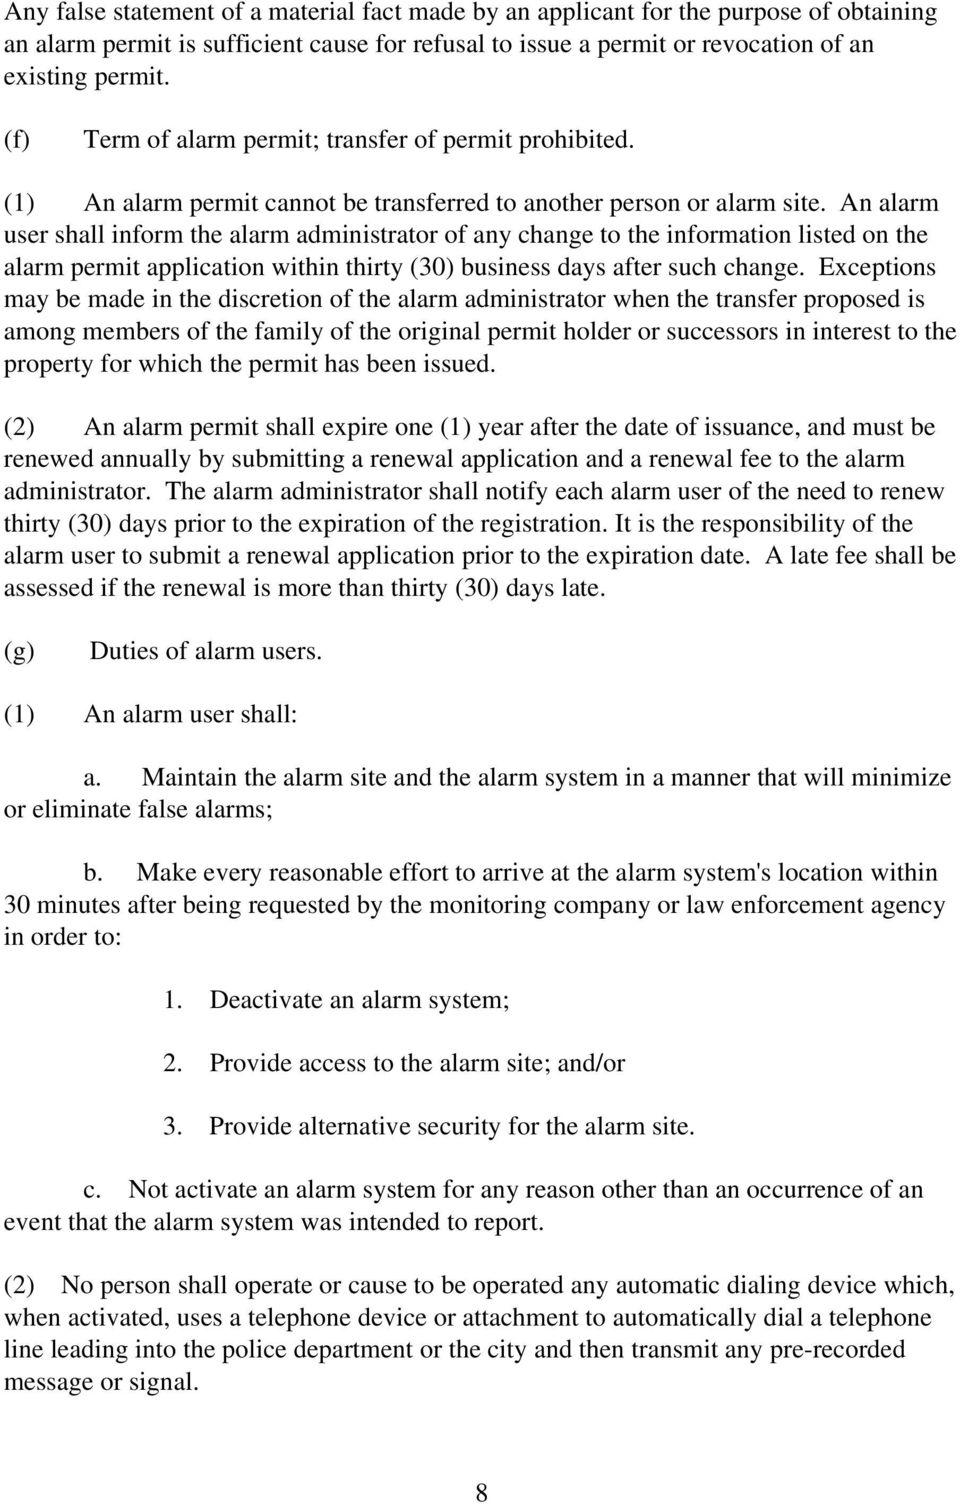 An alarm user shall inform the alarm administrator of any change to the information listed on the alarm permit application within thirty (30) business days after such change.